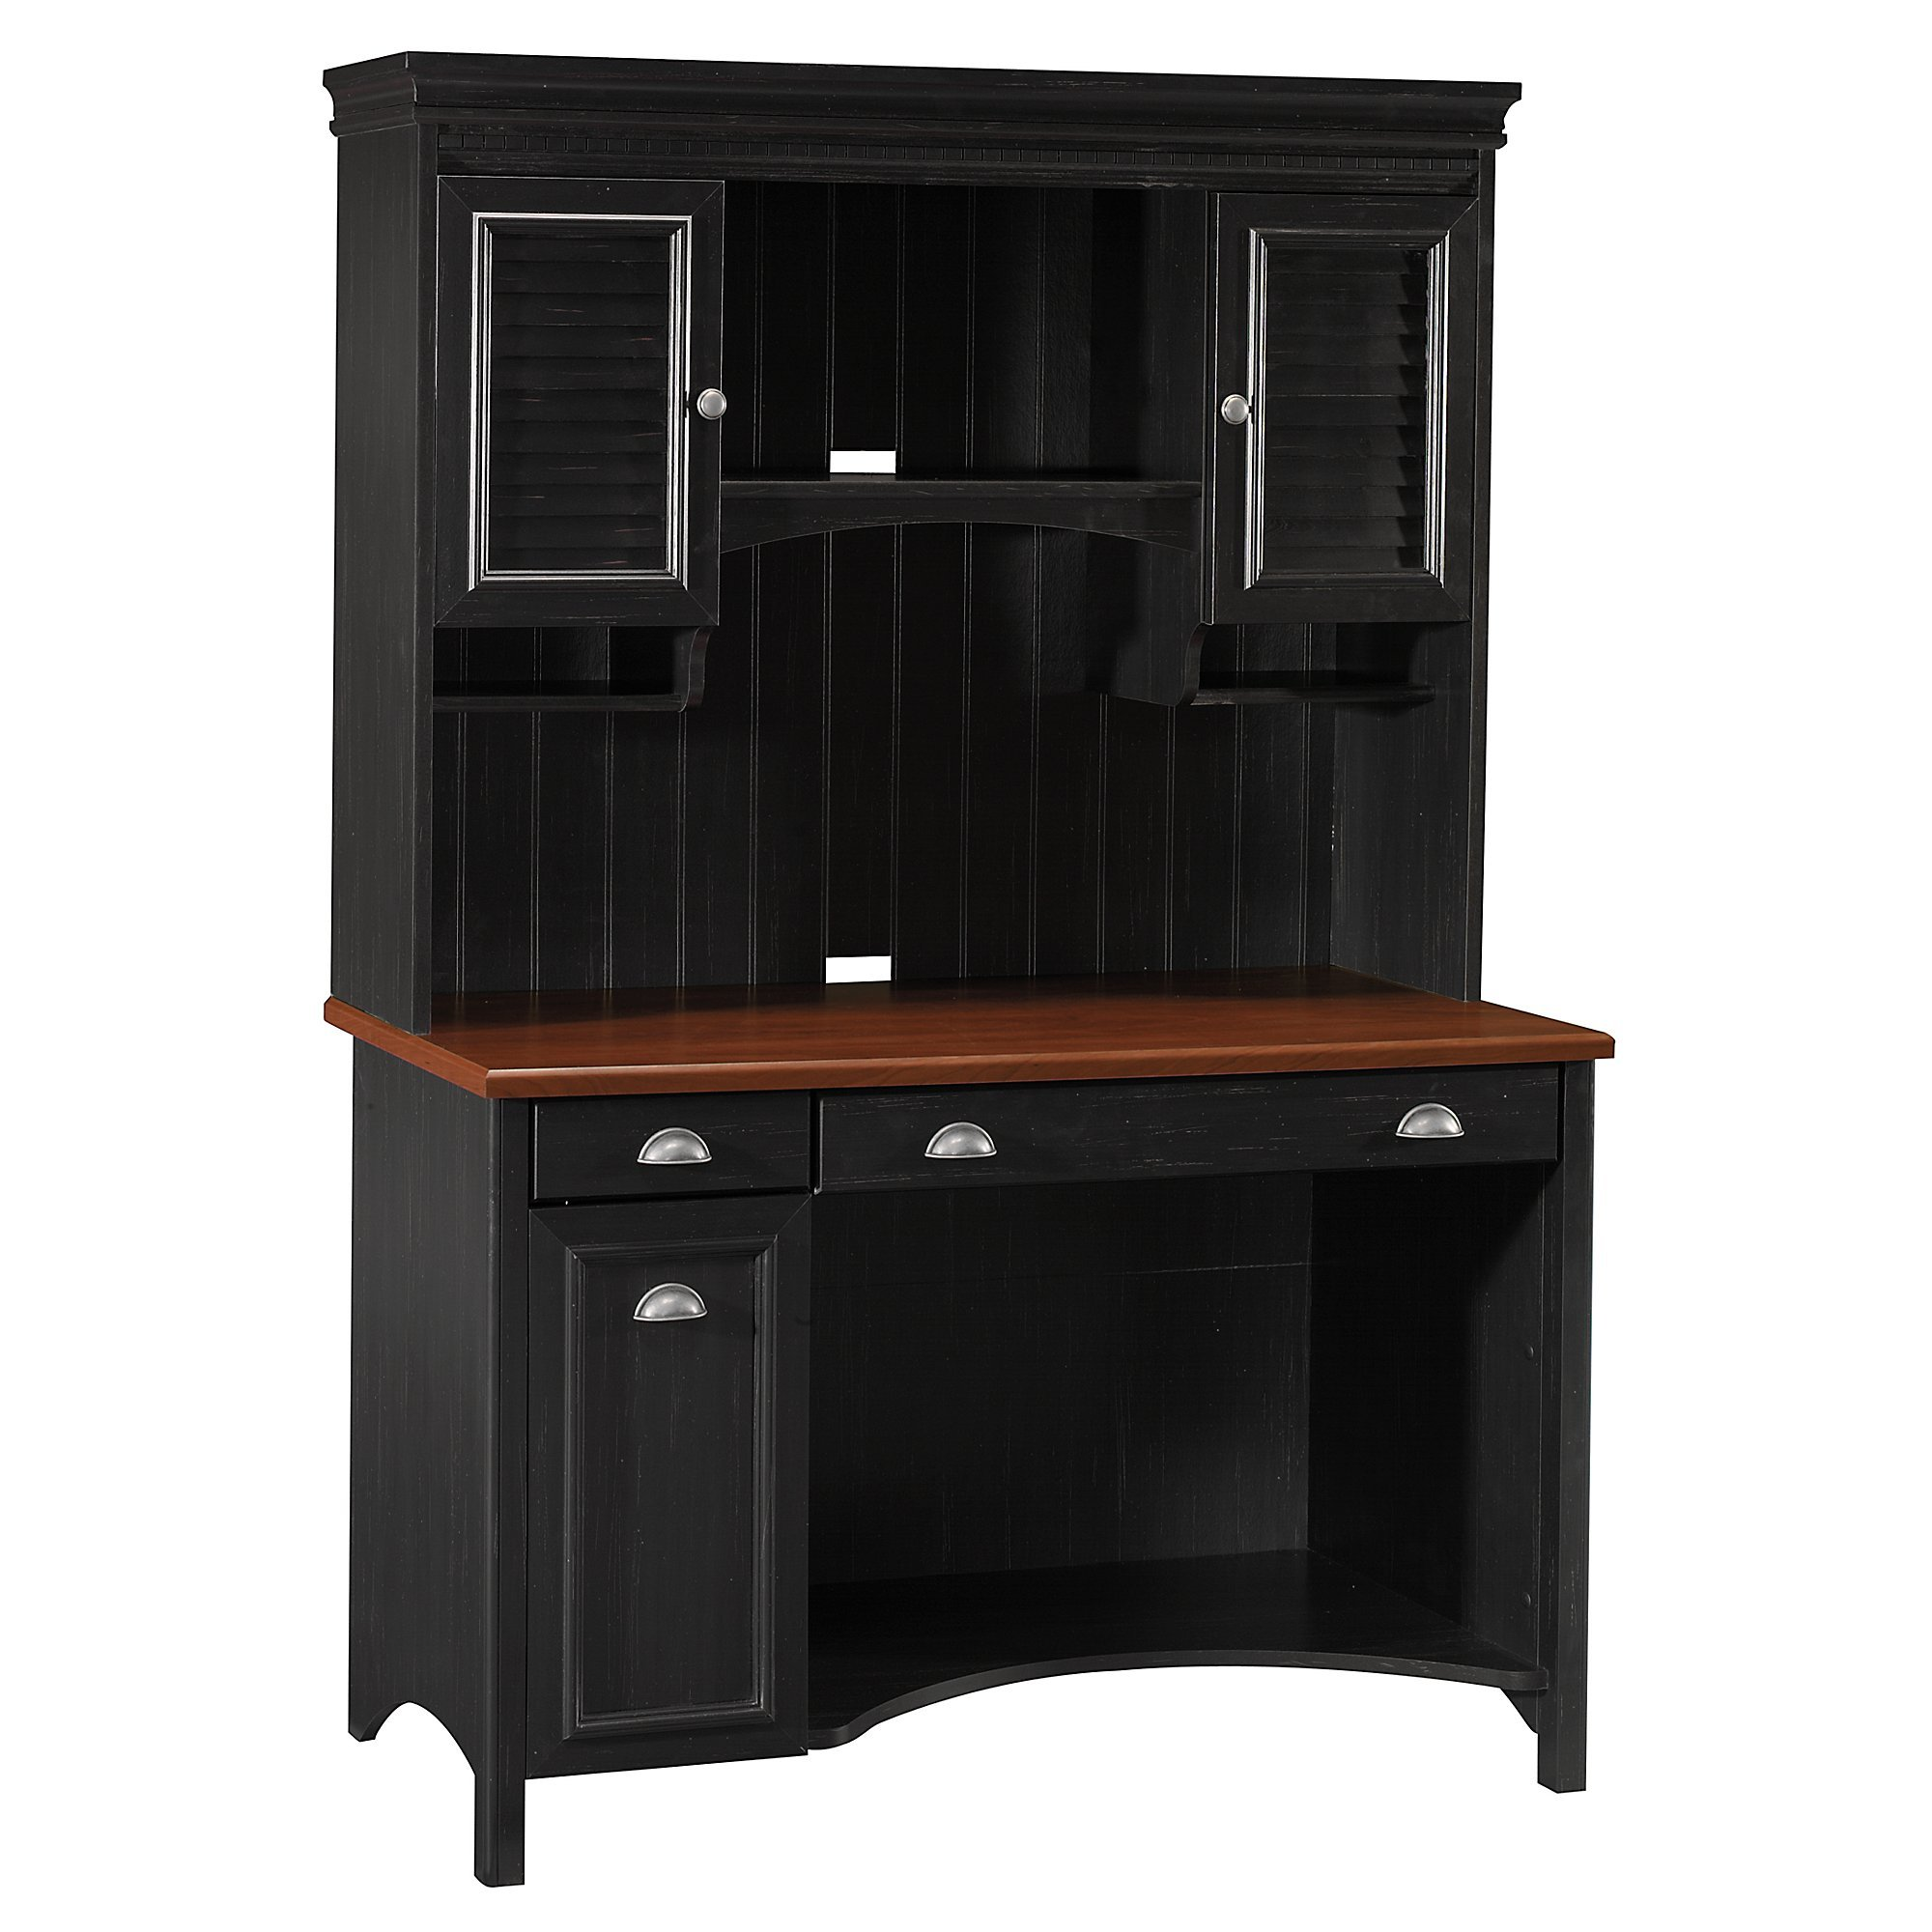 Bush Furniture Stanford Computer Desk with Hutch and Drawers in Antique Black by Bush Furniture